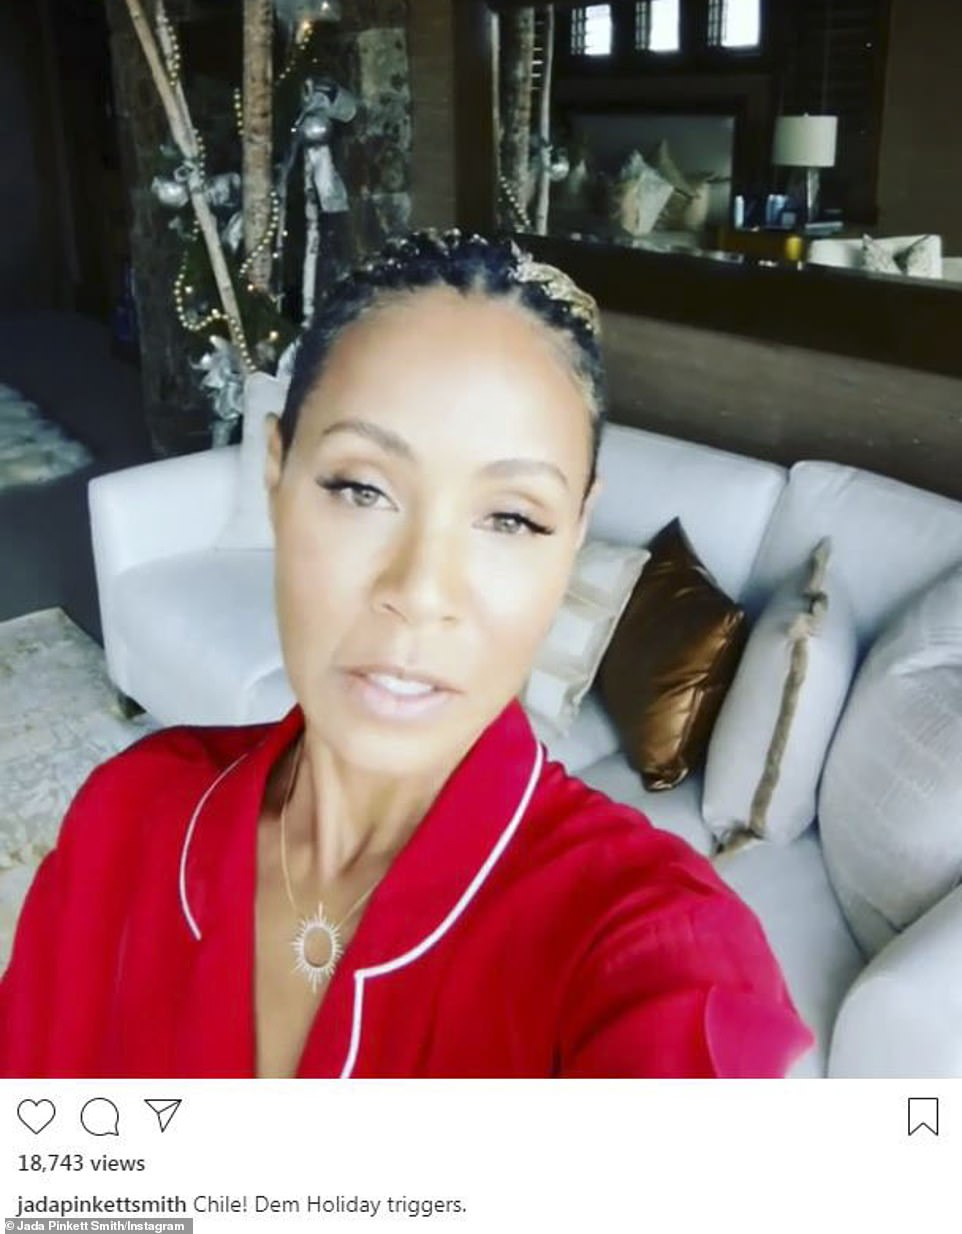 Christmas message:Jada Pinkett Smith, in festive red and white, shared her thoughts on holiday triggers